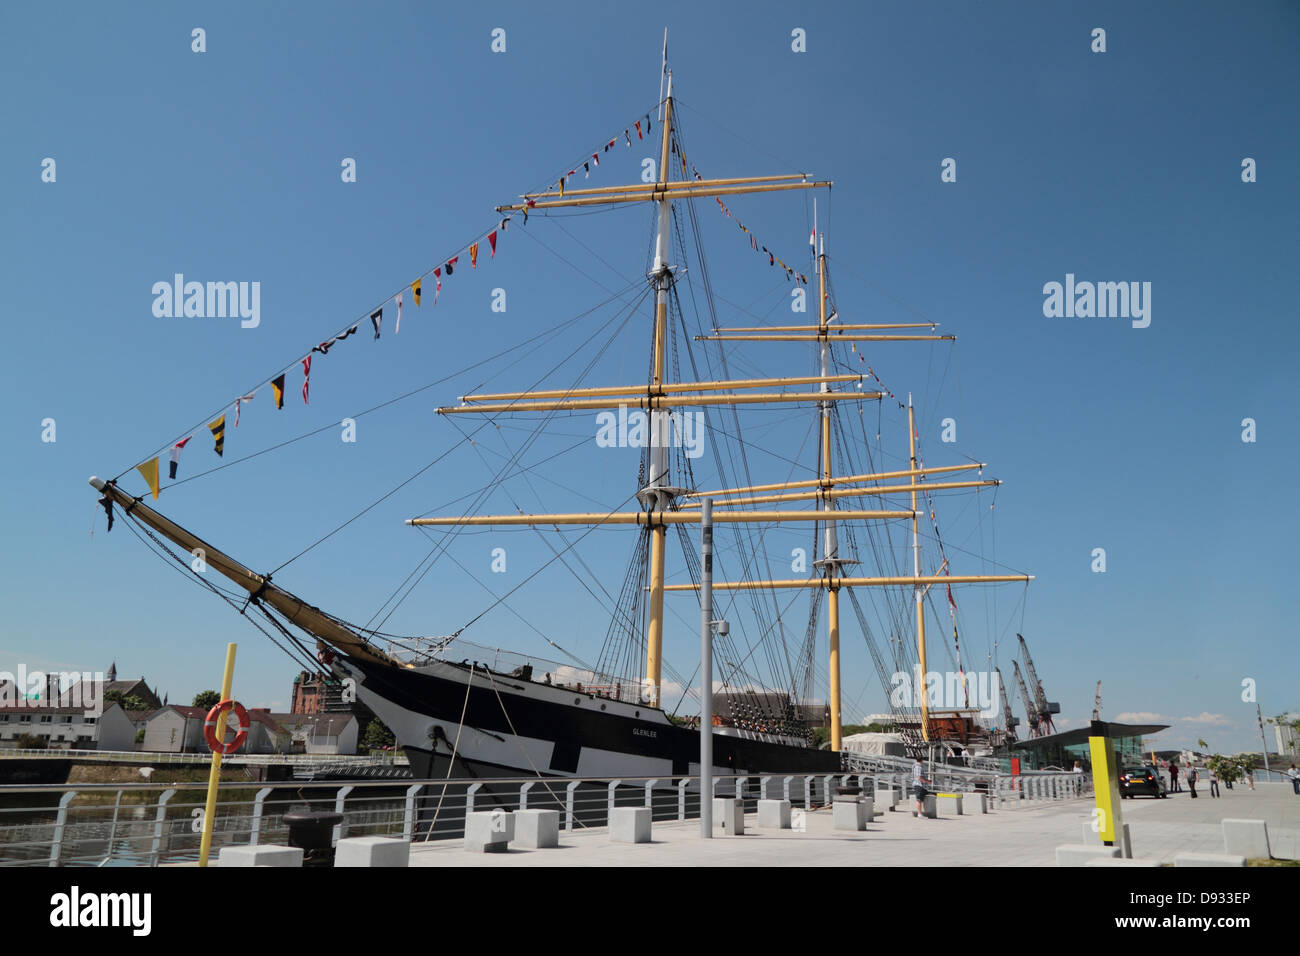 Glenlee is a steel-hulled three-masted barque, built in 1896 for Glasgow owners, trading as a cargo ship.  Glasgow, - Stock Image